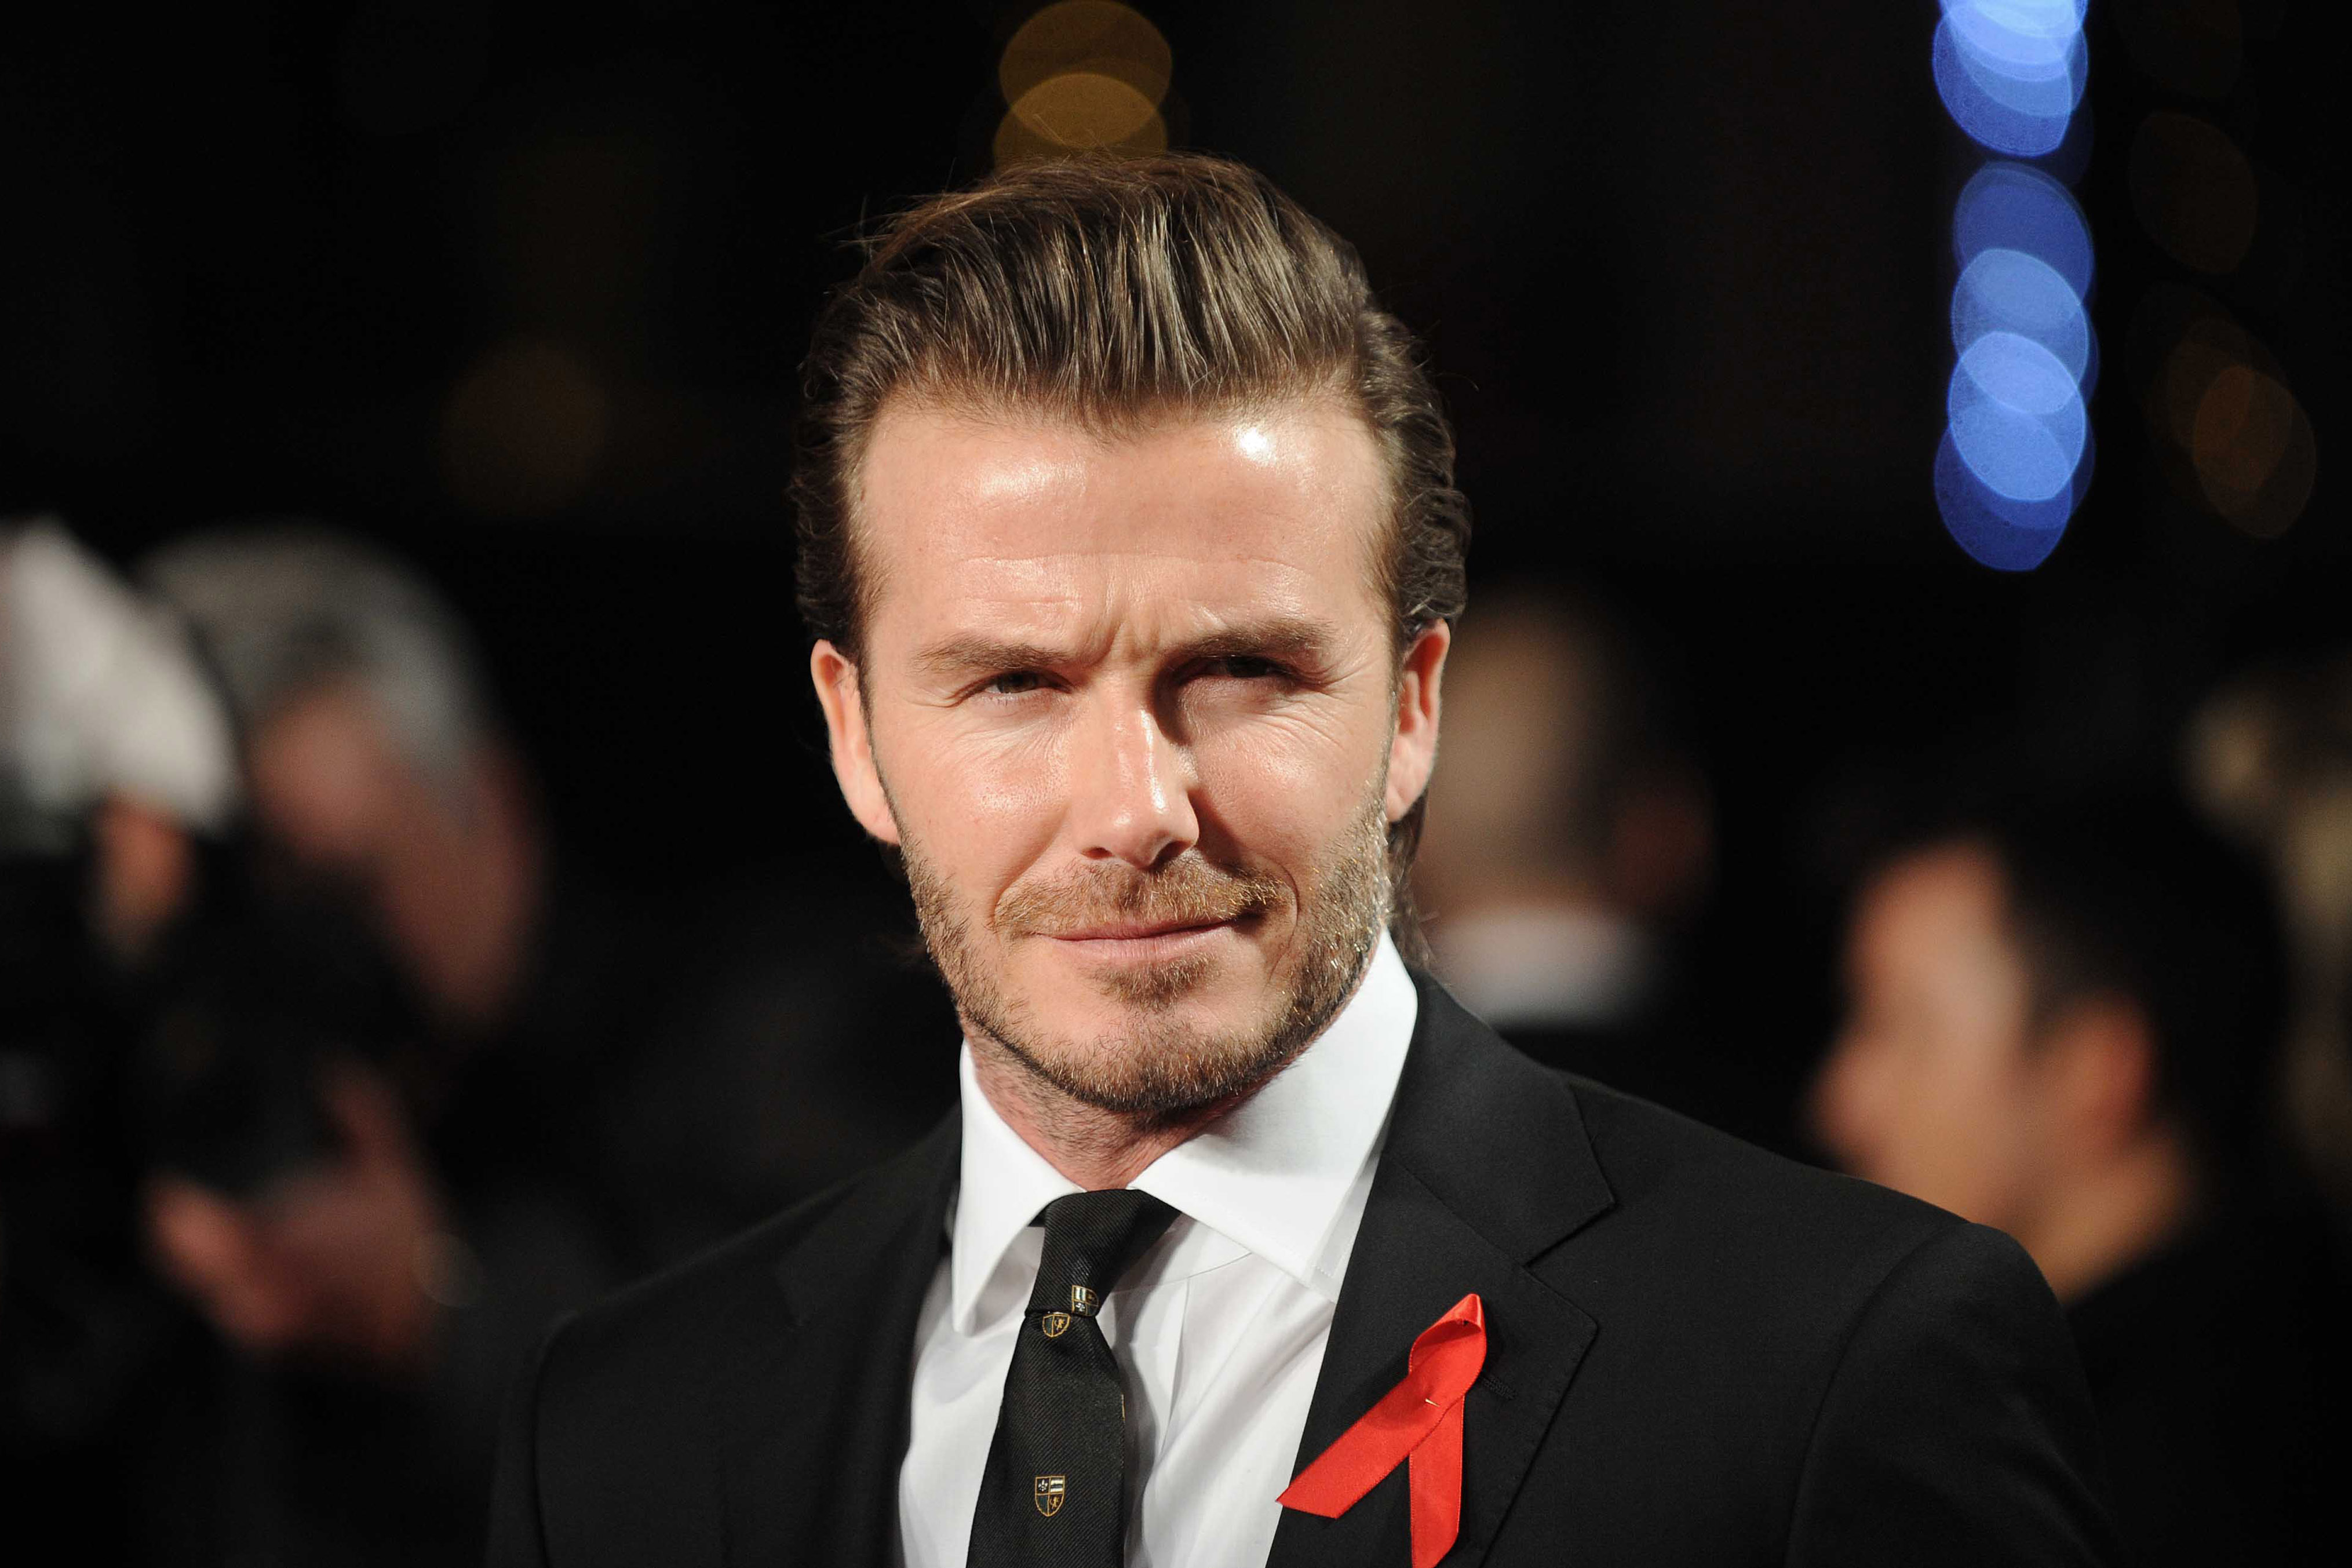 David Beckham Photos HD Picture gallery free download David beckham pictures download